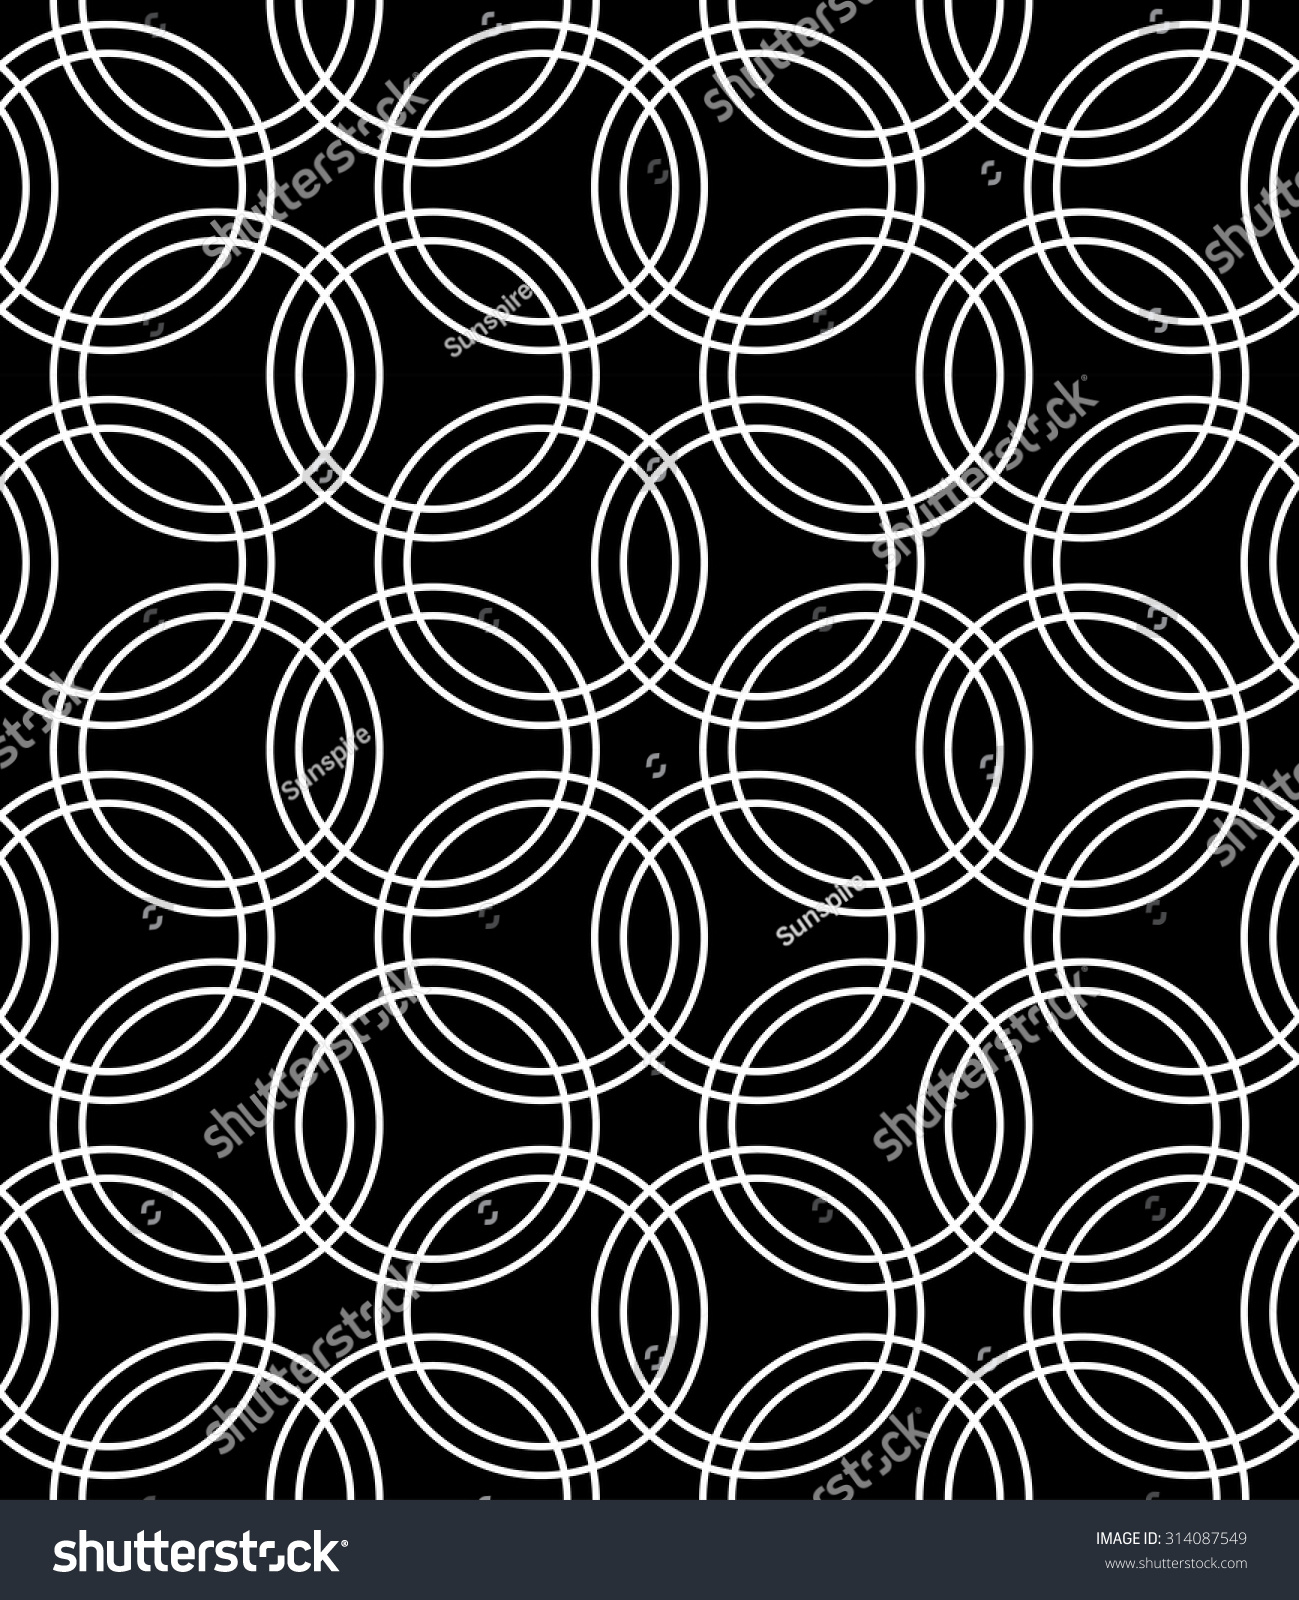 Bed sheet pattern texture - Vector Modern Seamless Pattern Flowers Black And White Textile Print Stylish Background Abstract